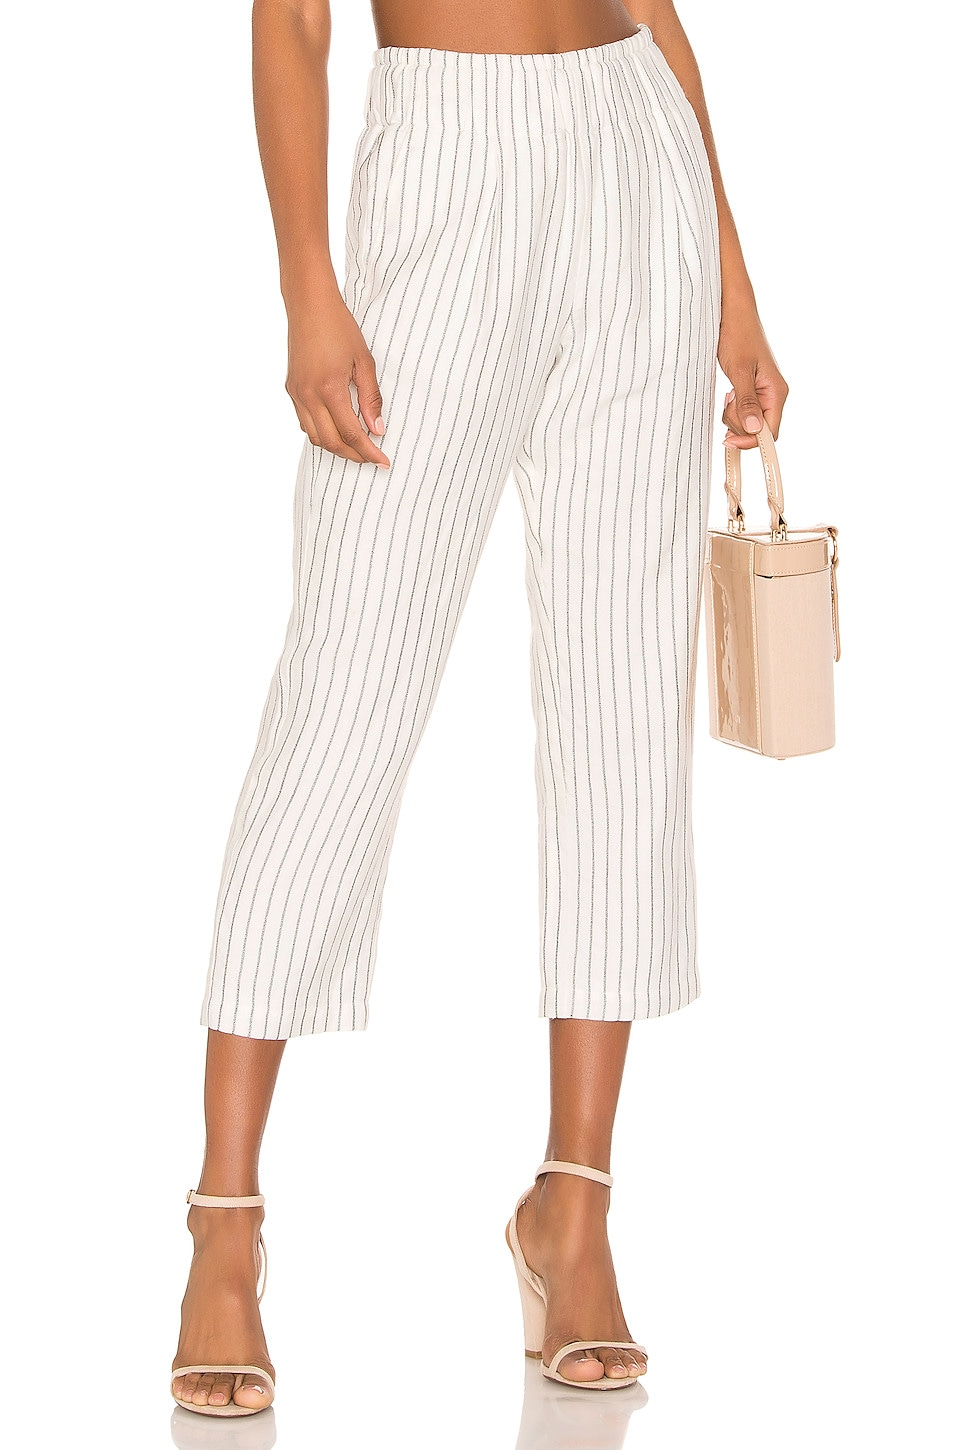 Joie Araona Pant in Porcelain